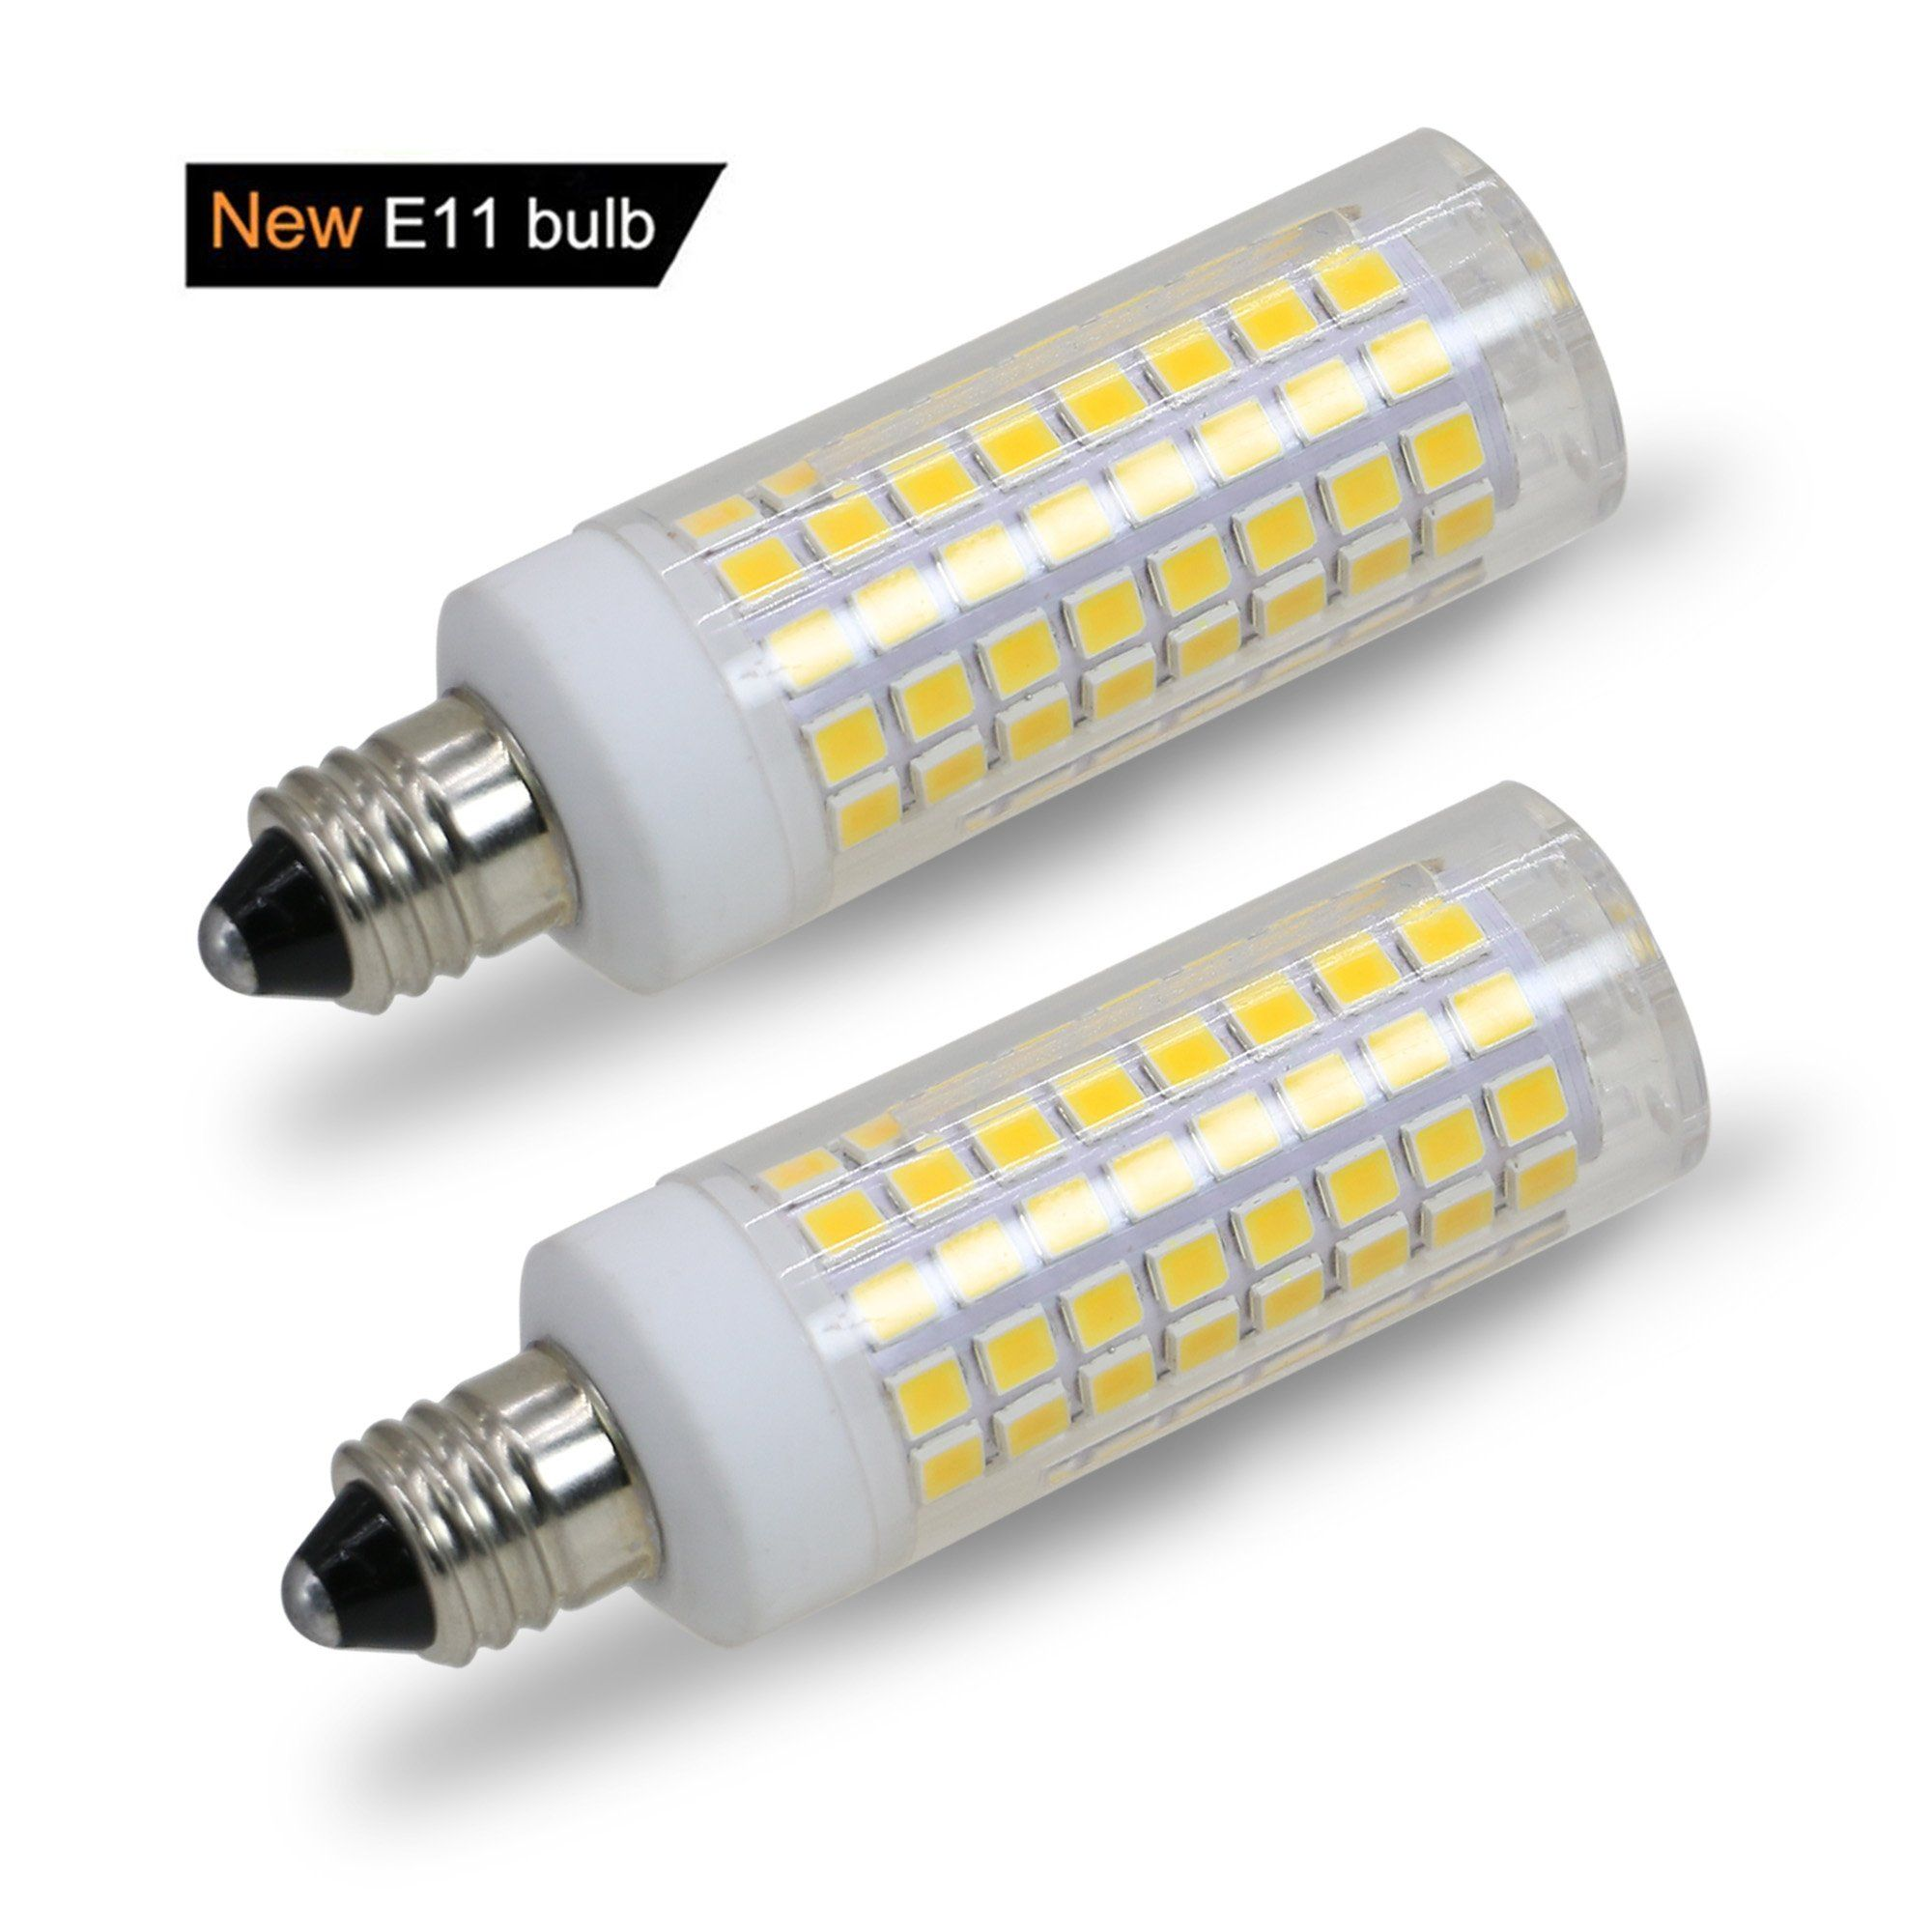 E11 Led Bulb 75w Or 100w Equivalent Halogen Replacement Lights Dimmable Mini Candelabra Base 850 Lumens Warm White 3000k Ac110v 120v 1 Led Bulb Light Bulb Bulb